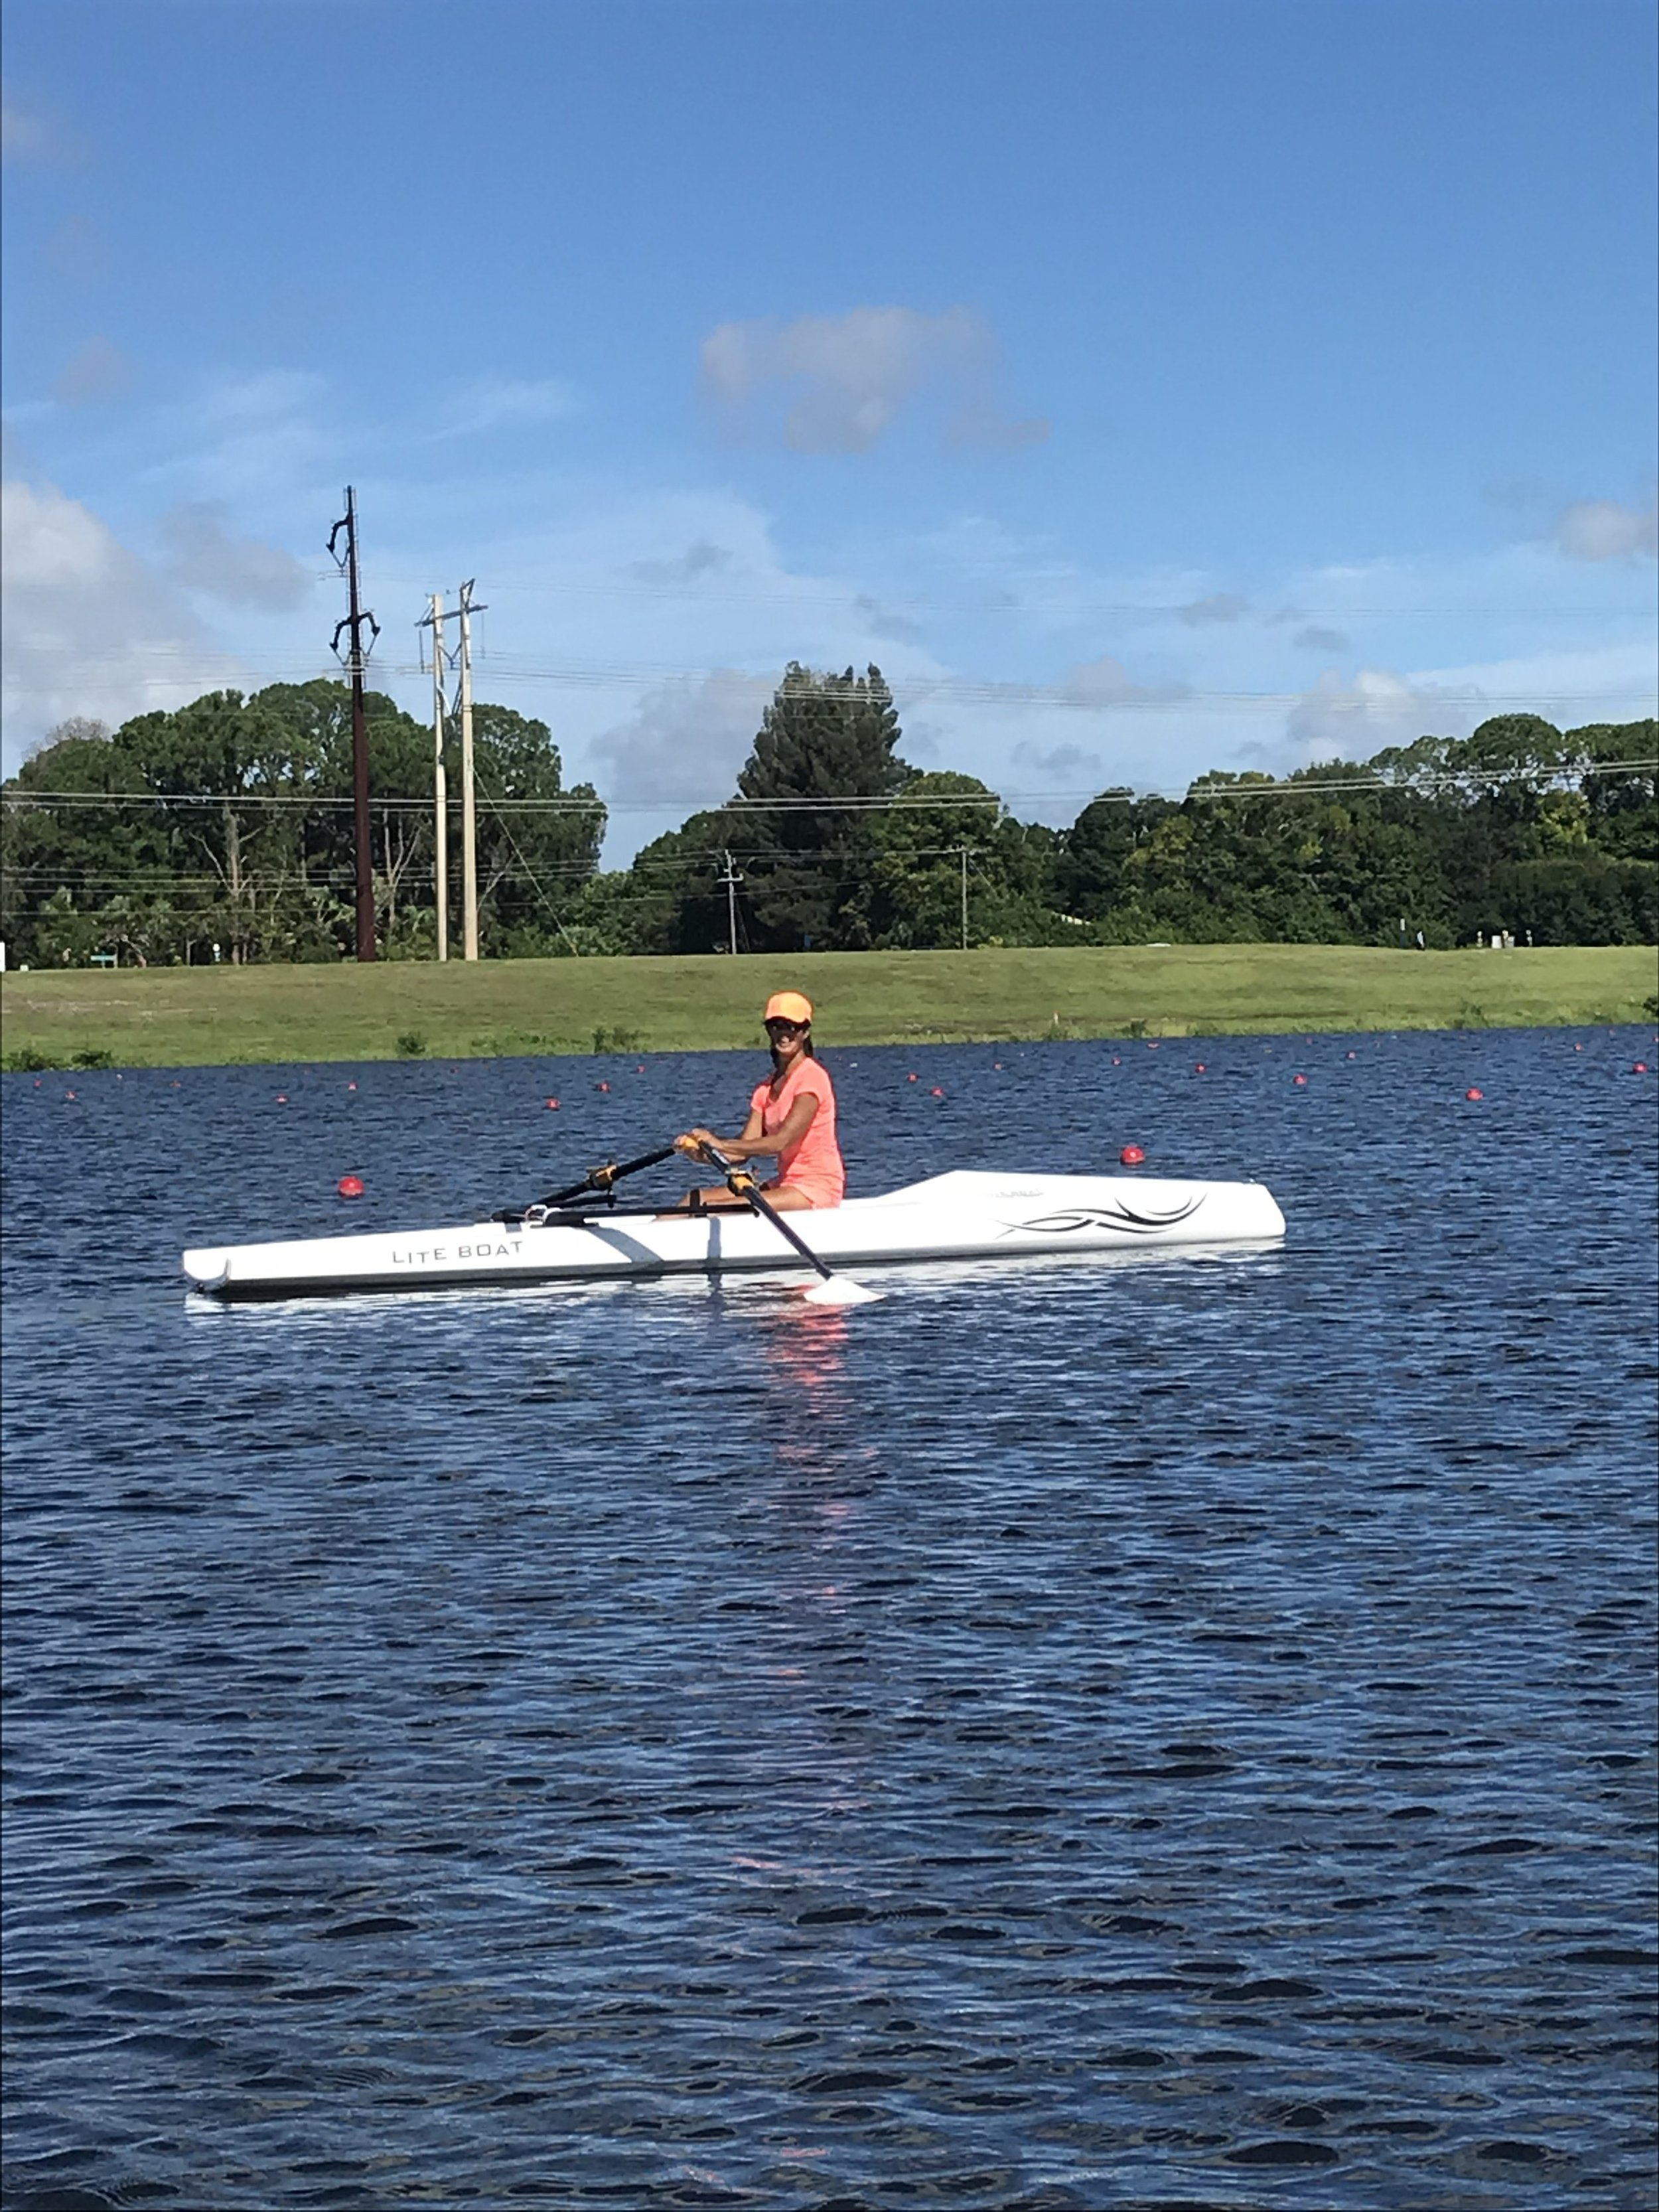 Welcome - Another new member of our LiteBoat family taking delivery of her LiteSport+. We are looking forward to many rows together.